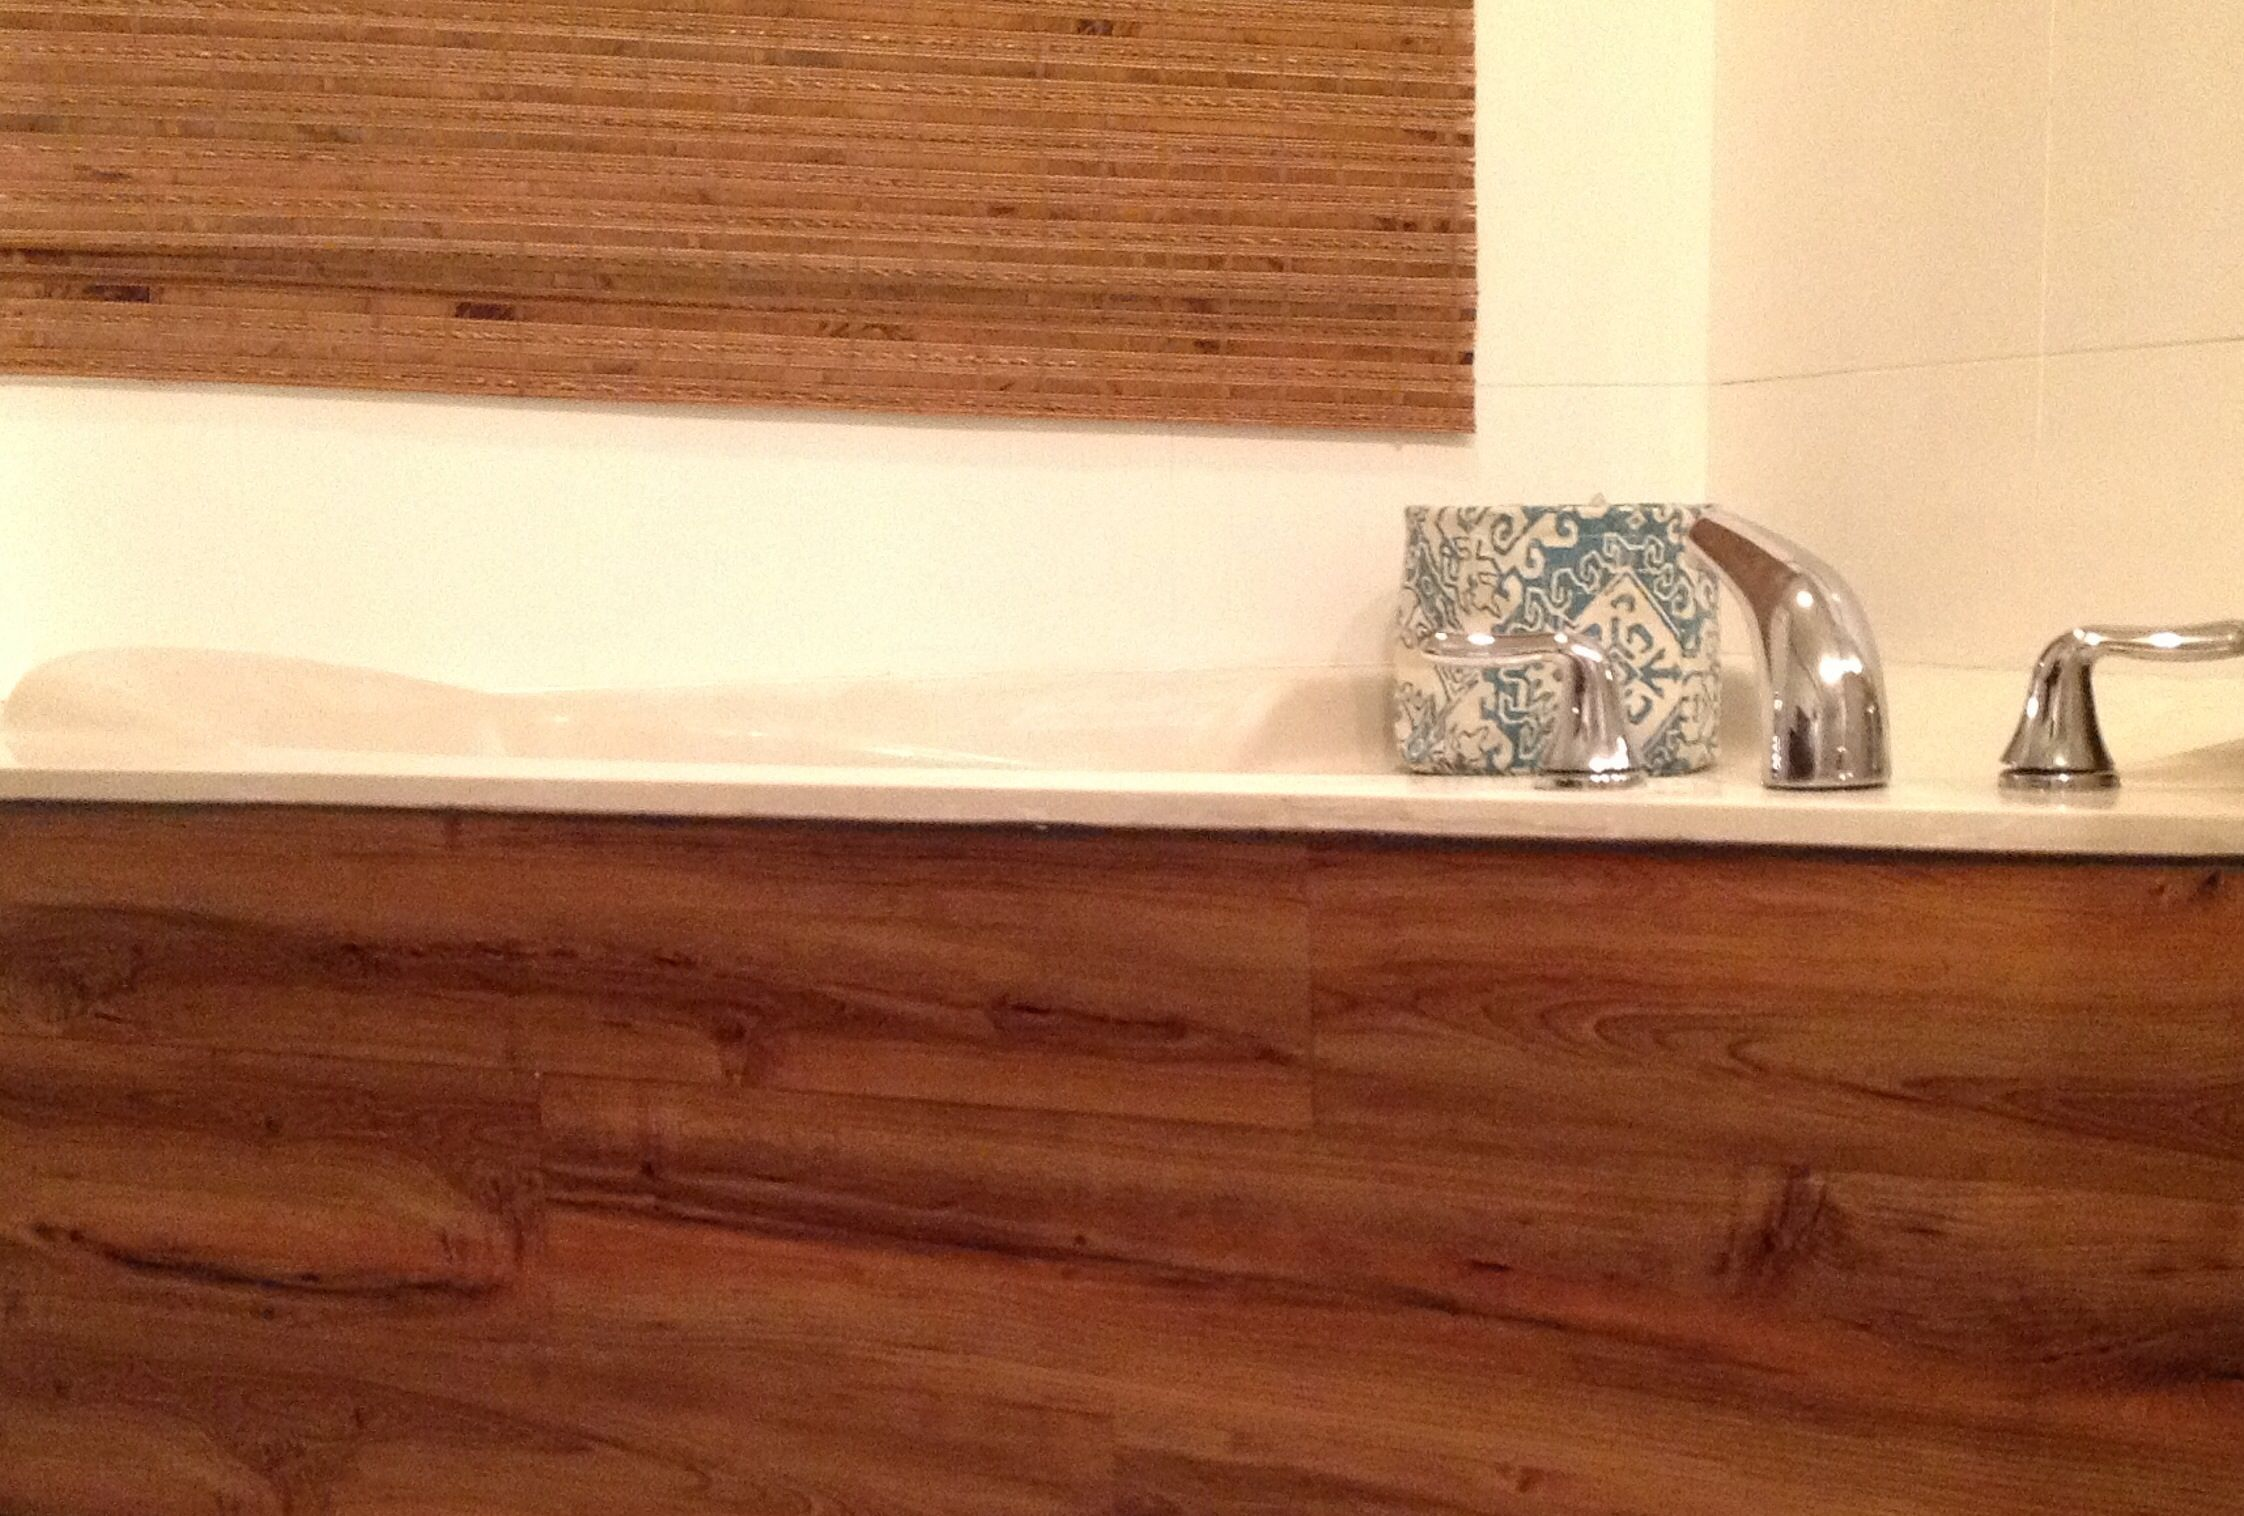 Tub Skirt   Tub Surround Makeover Using Adhesive Wood